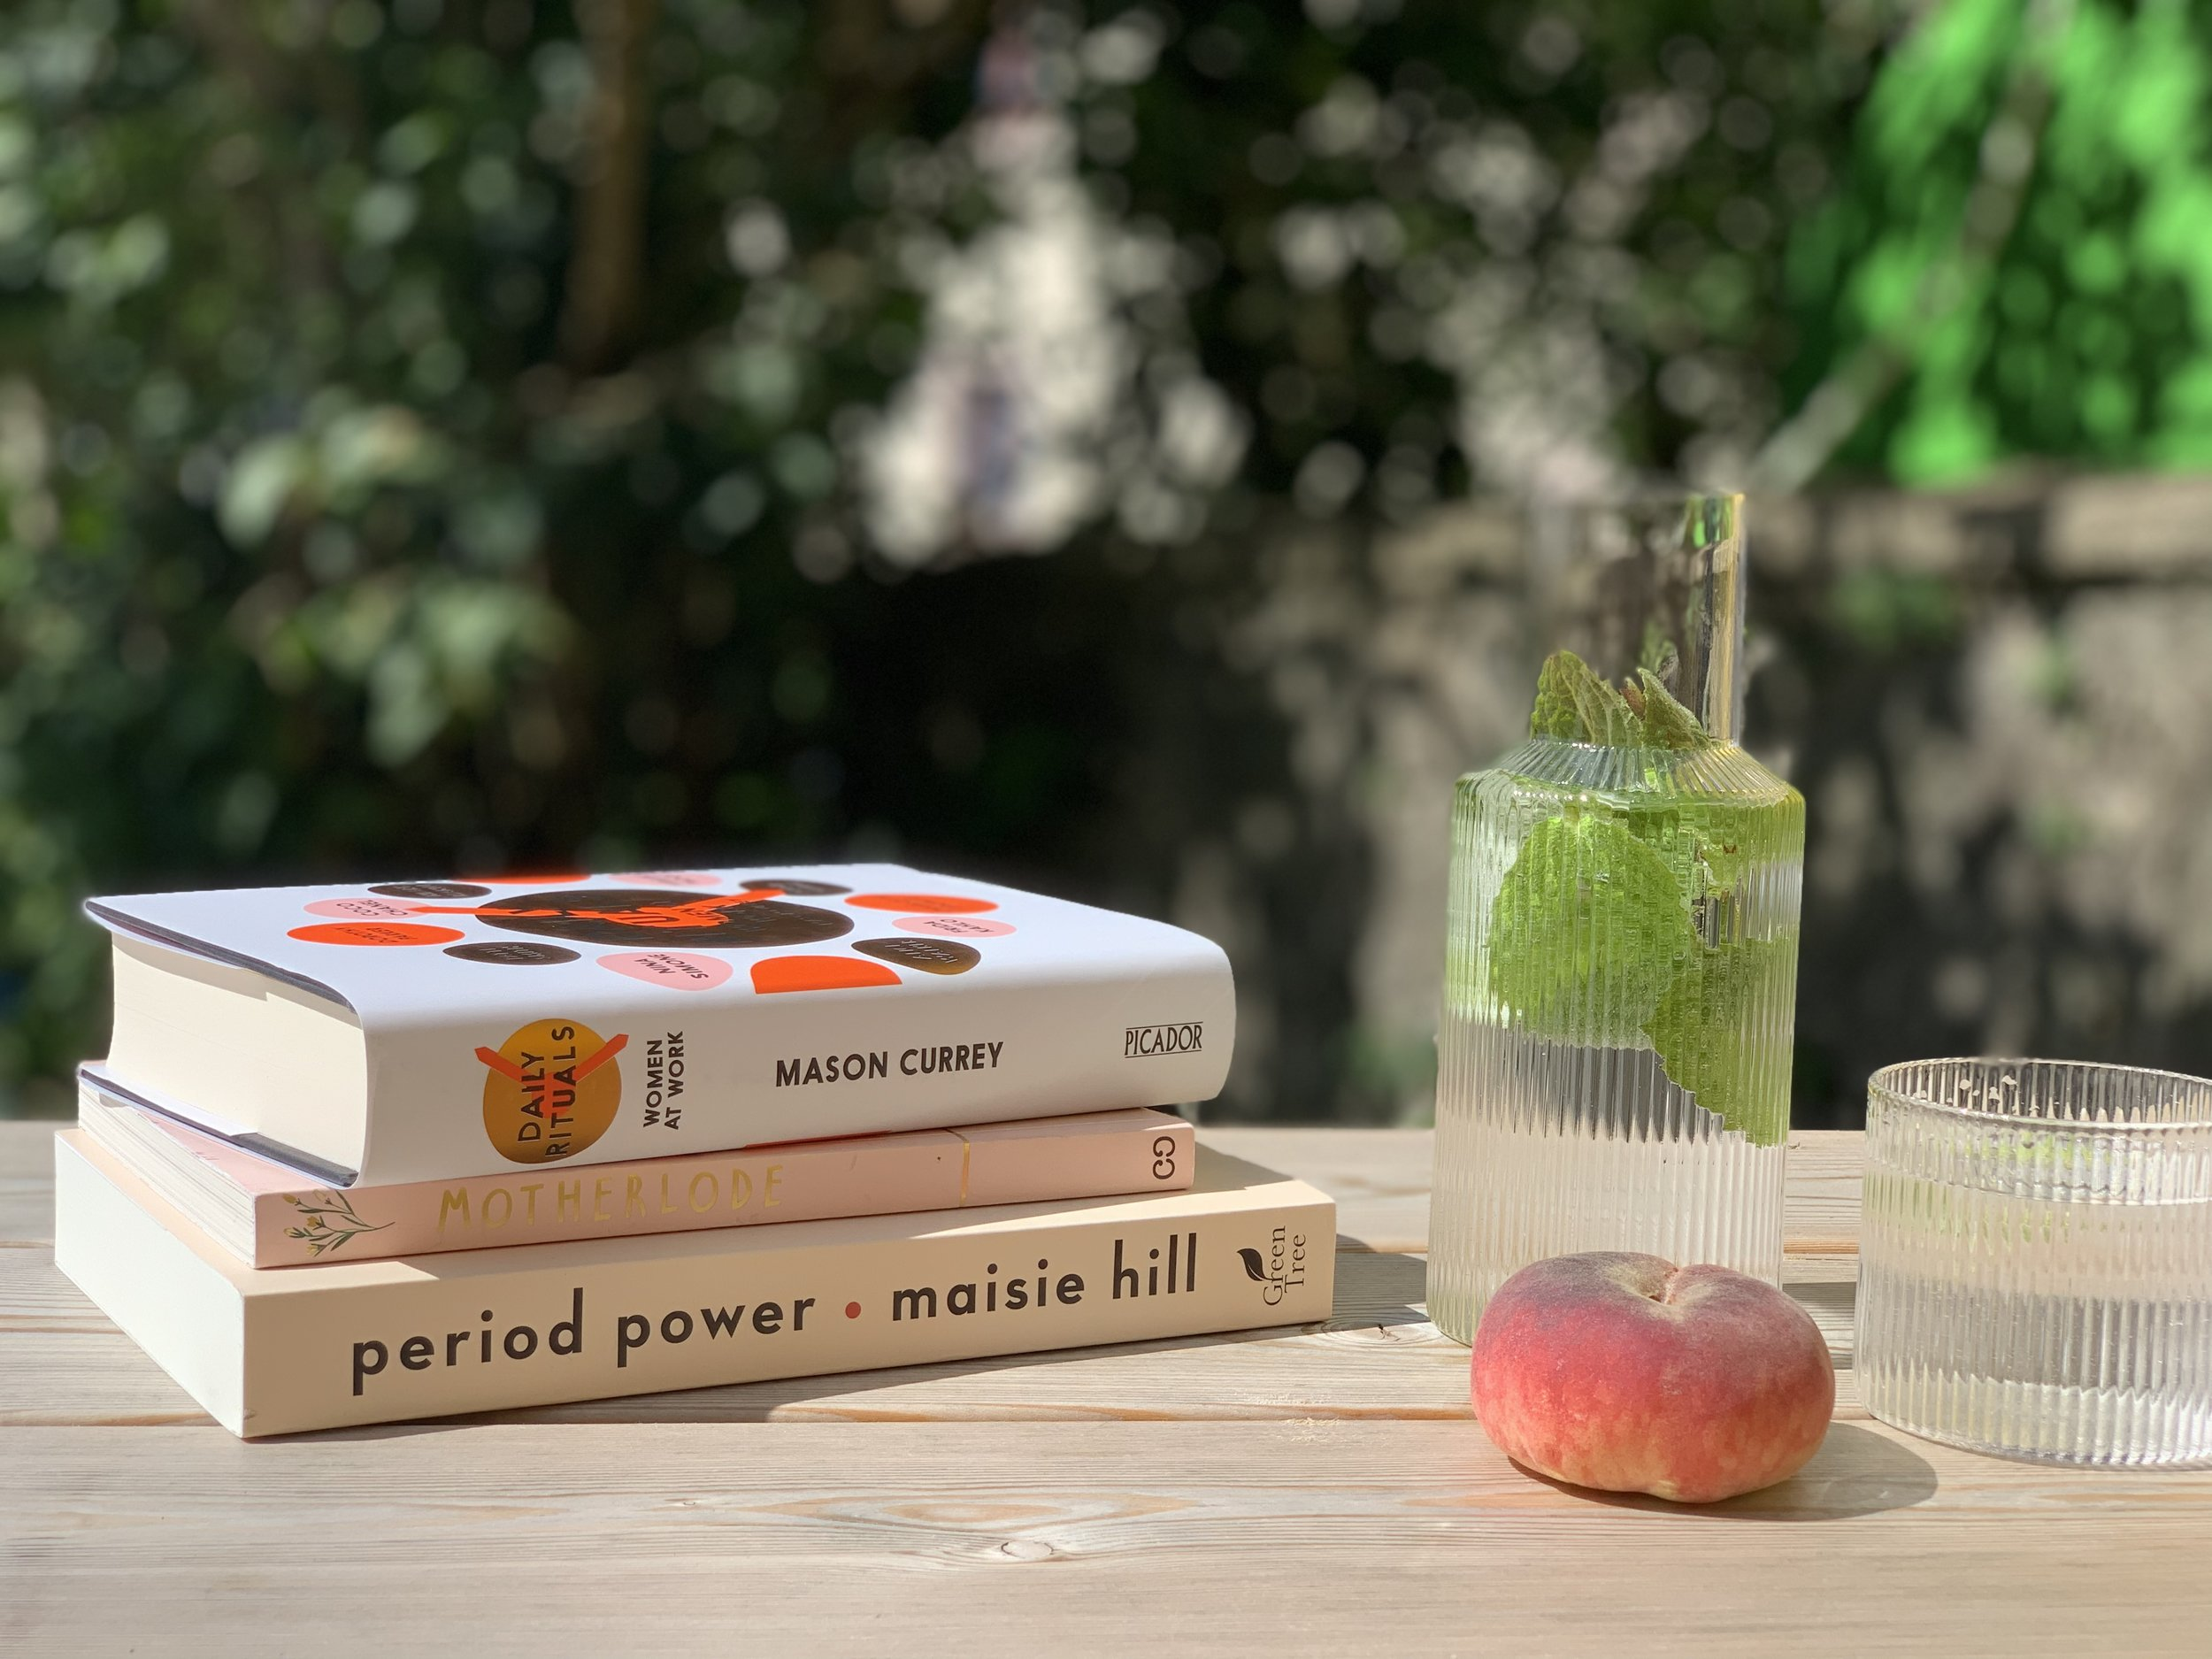 Period Power - Maisie Hill, Motherlode - Georgie McAusland, Daily Rituals/Women at Work - Mason Currey, Ferm Living 'ripple' carafe and glasses, all available at ÒR